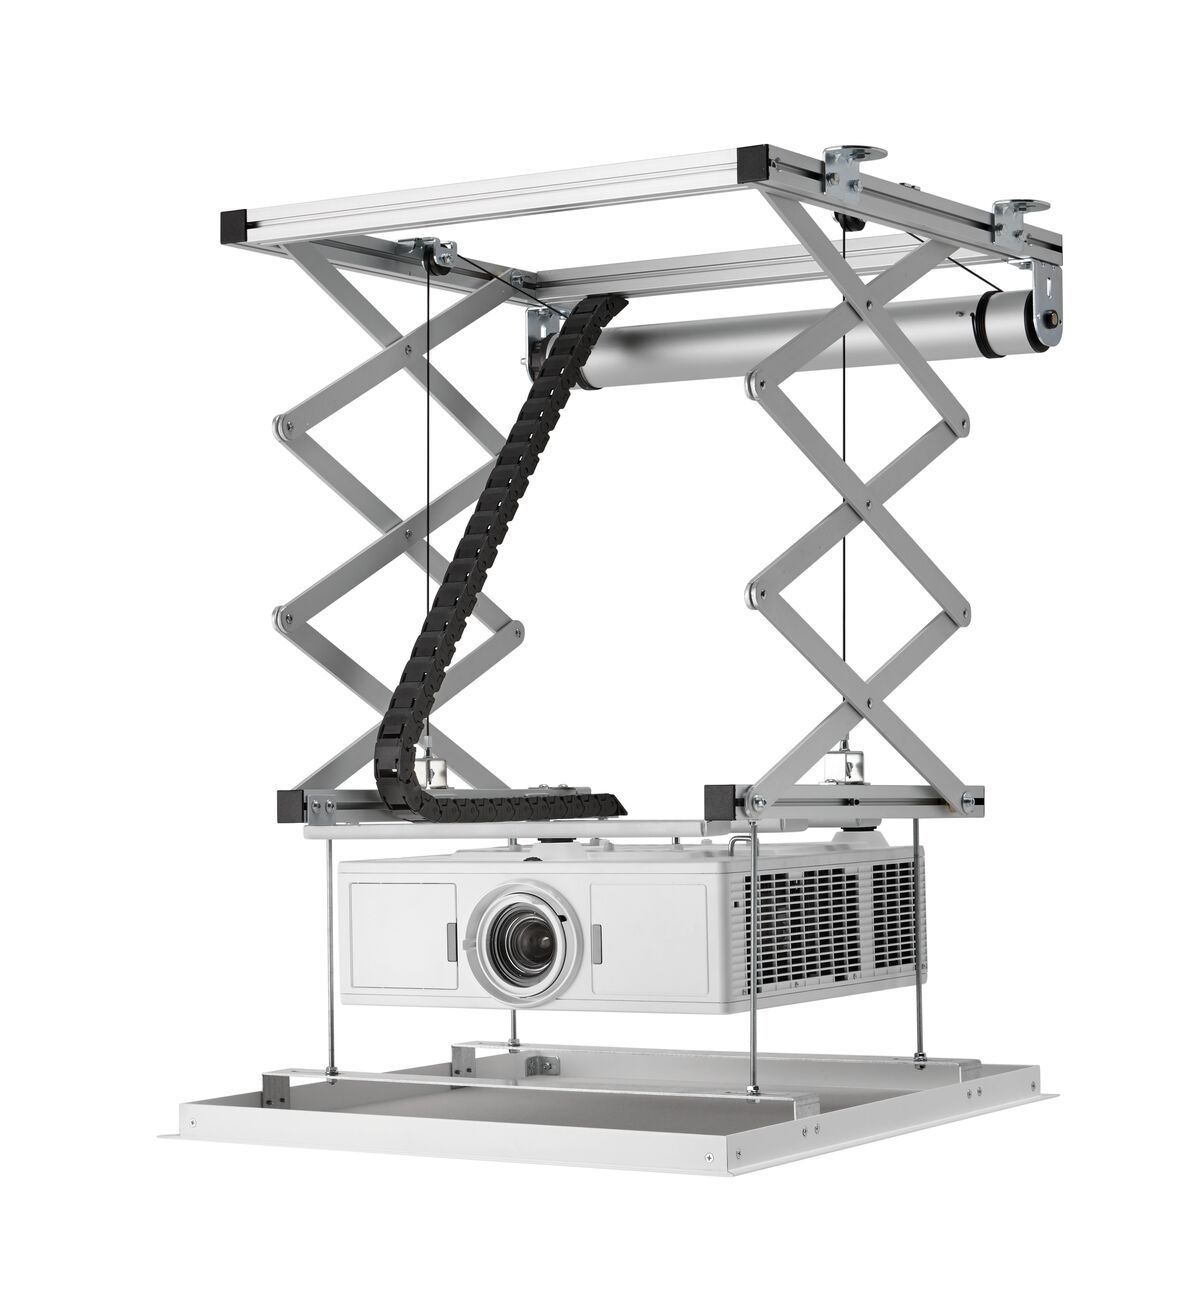 Vogel's PPL 2100-120V Projector lift system - Application